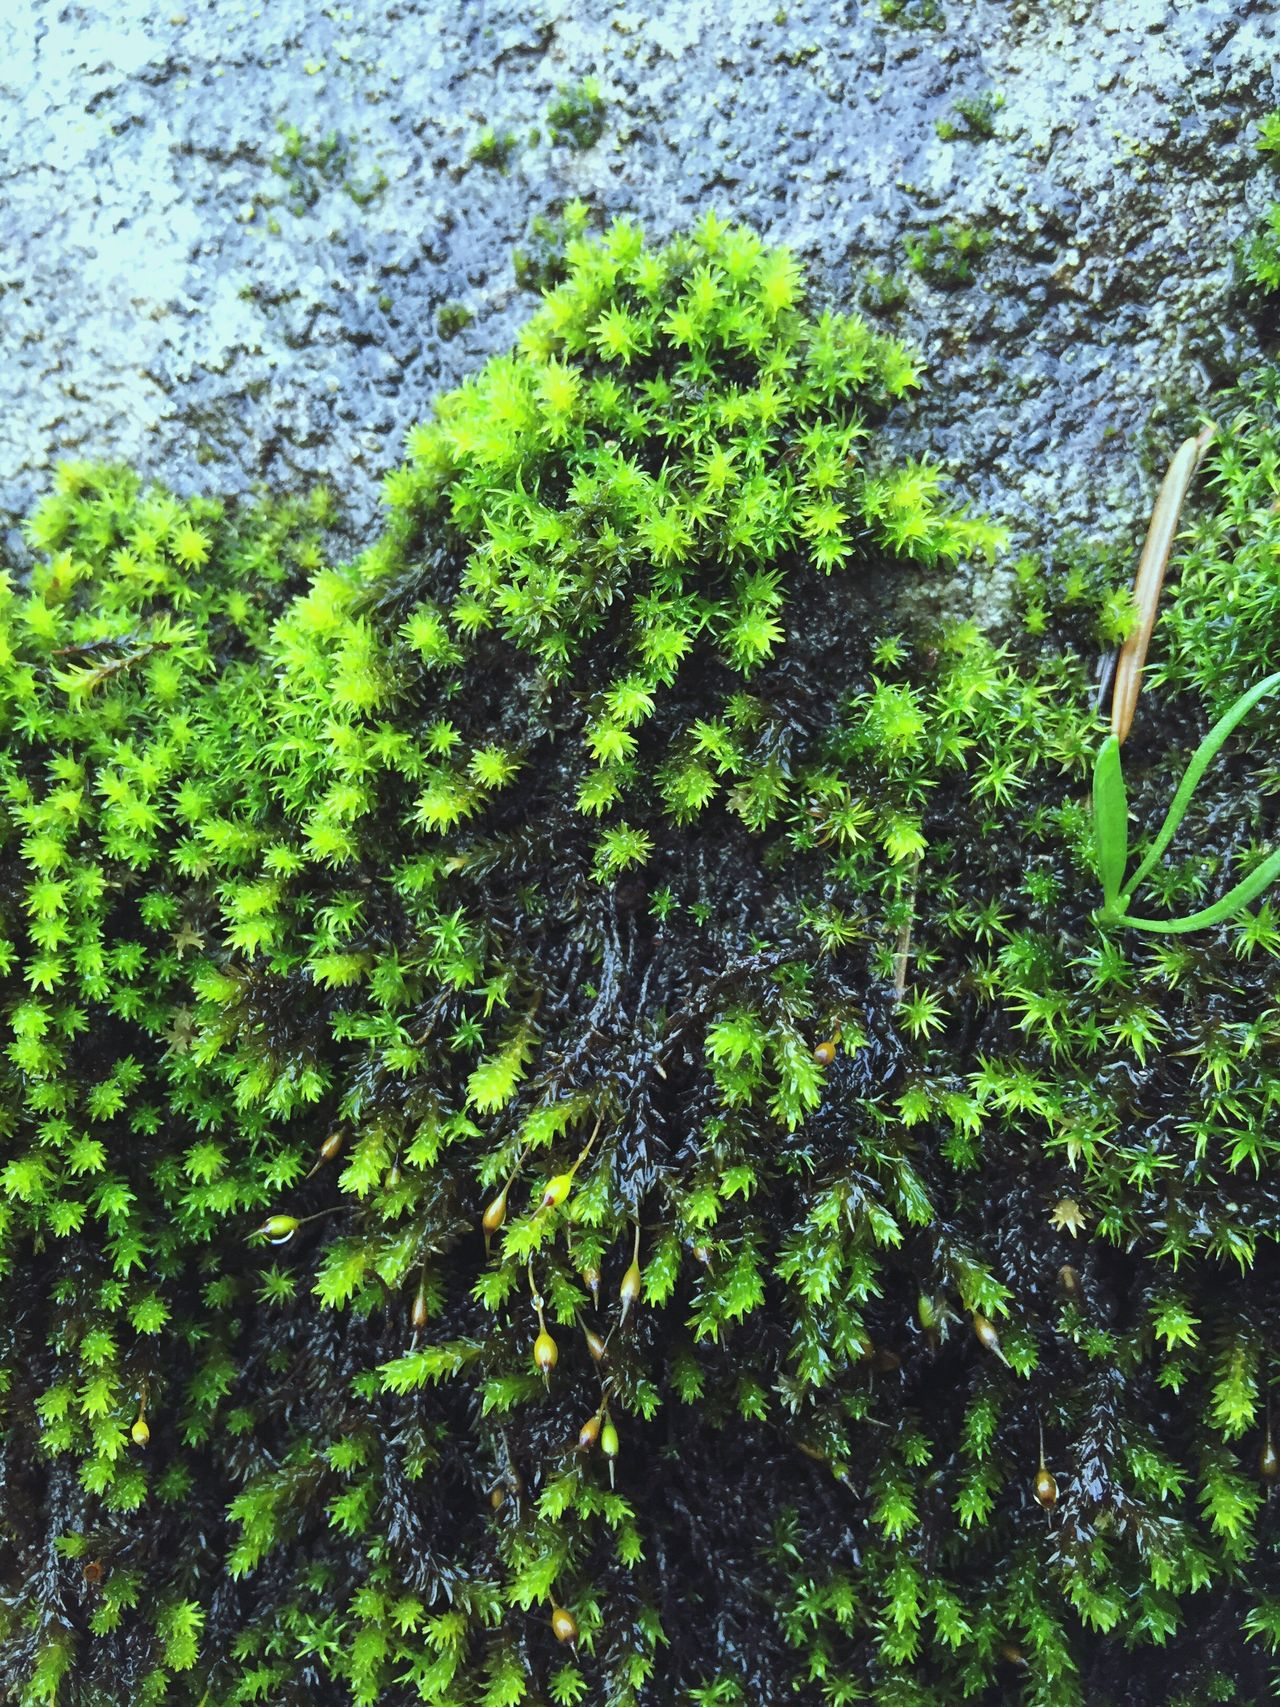 Textured  Plant Growth Nature Outdoors Beauty In Nature Close-up Green Color Abstractions Moss & Lichen Natural Condition Power In Nature Backgrounds Scenic Views Perspective Shapes In Nature  Abstract Nature Layers And Textures Weathered Rock Formation